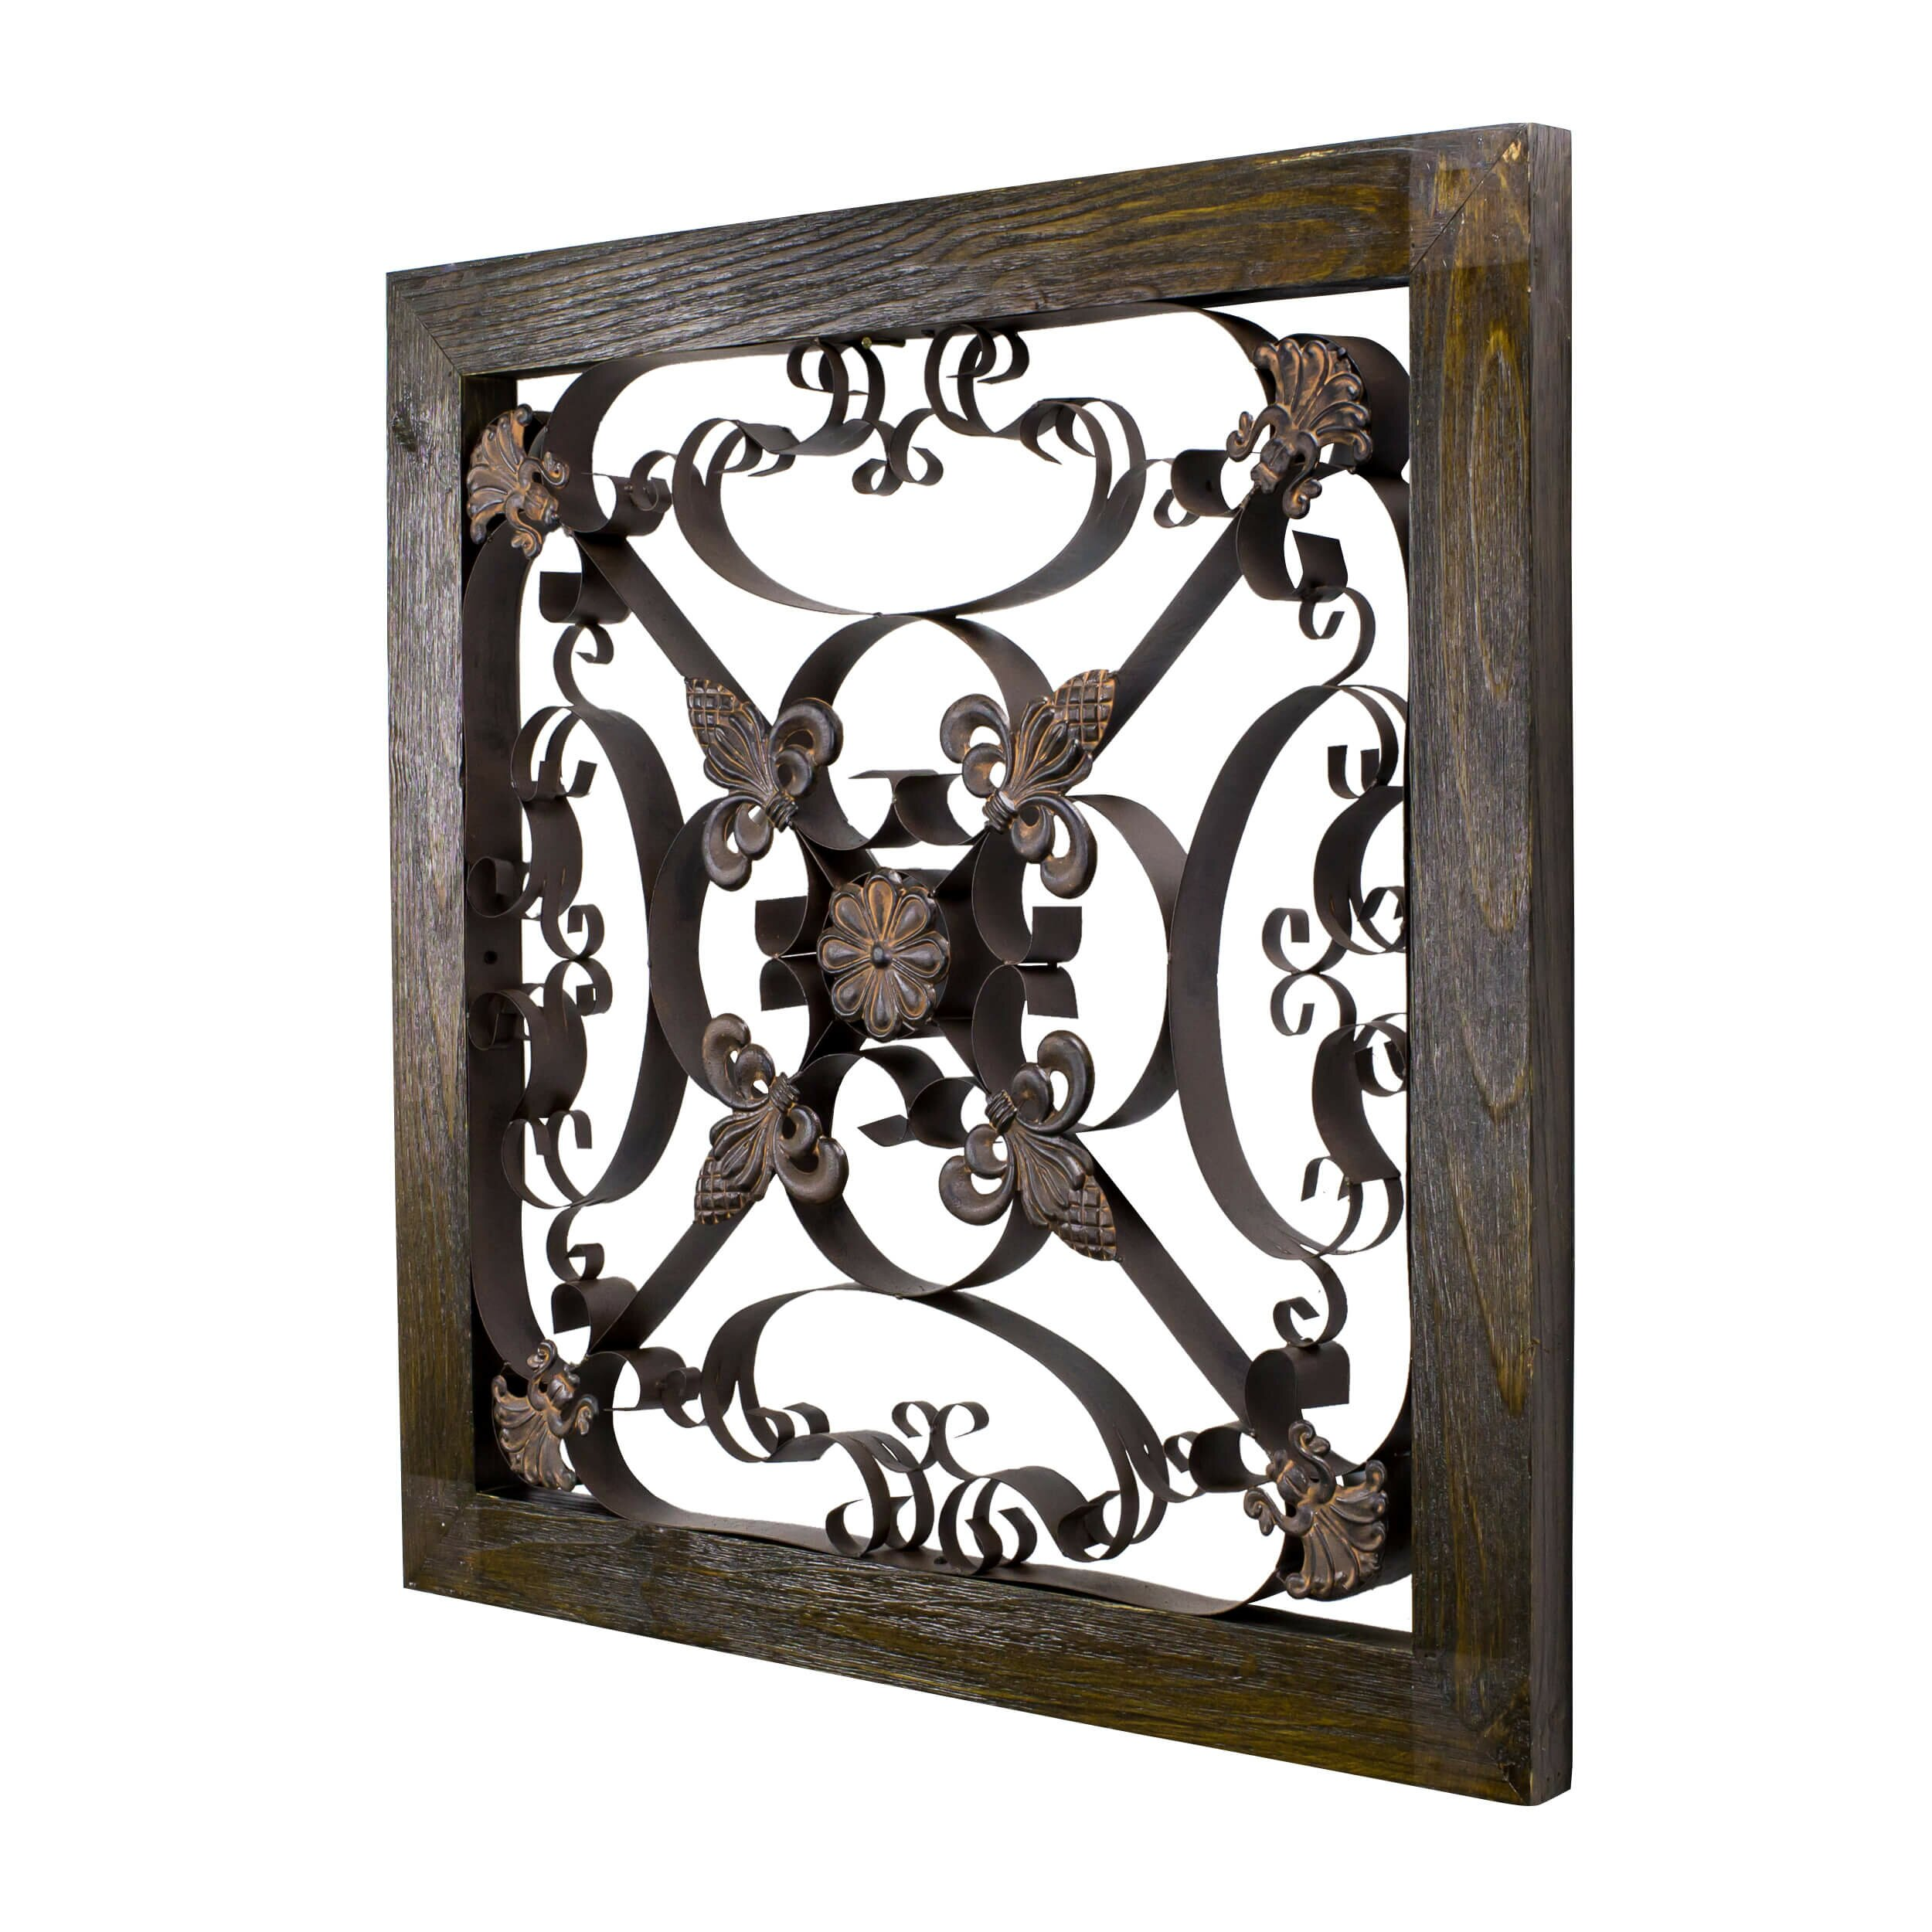 Bayaccents Square Framed Wrought Iron Wall Art Wayfair